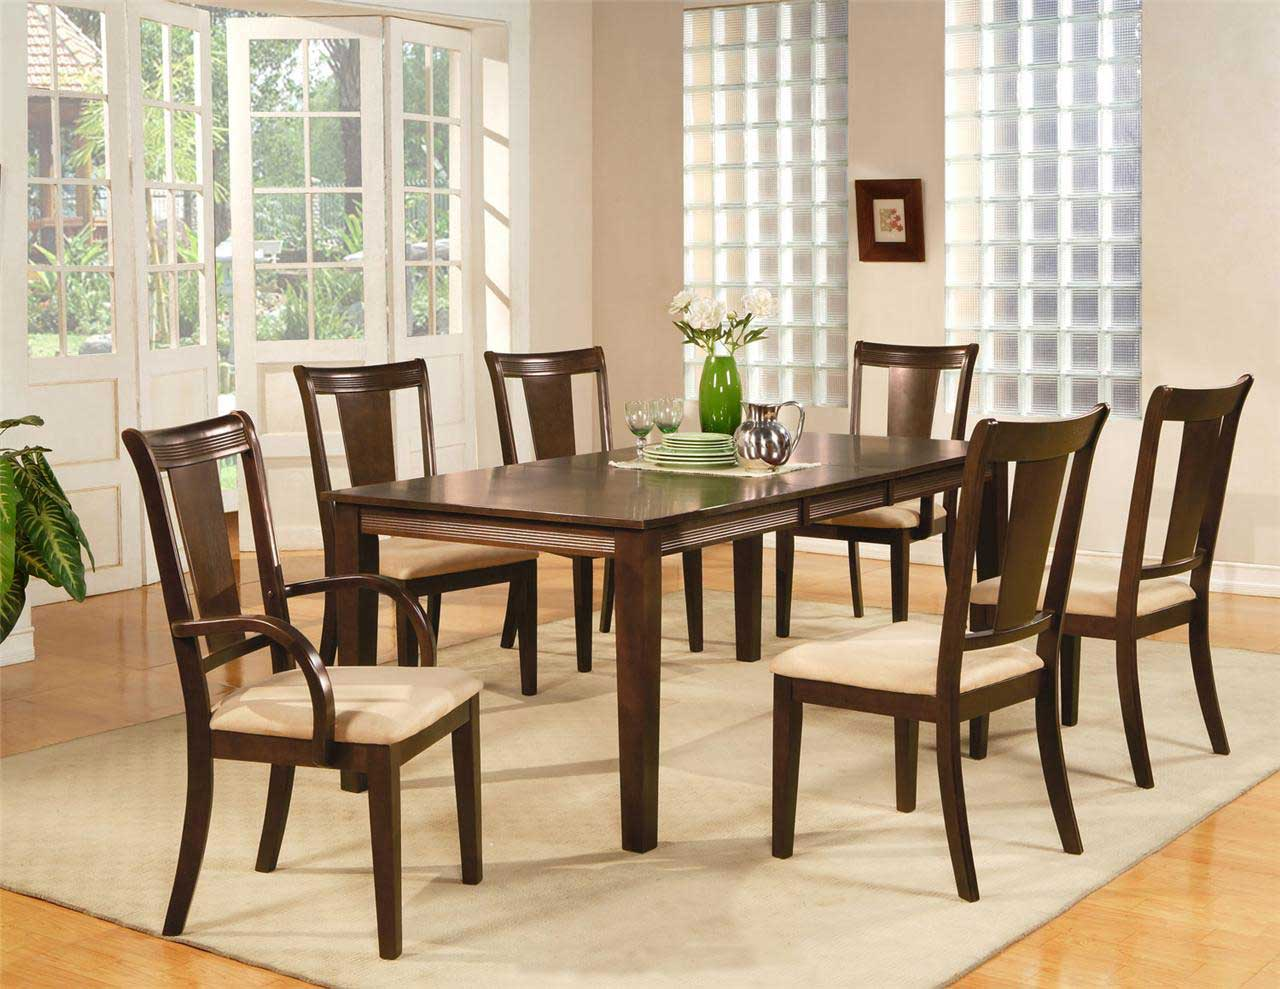 Stunning Simple Dining Room Design Ideas simple dining room design